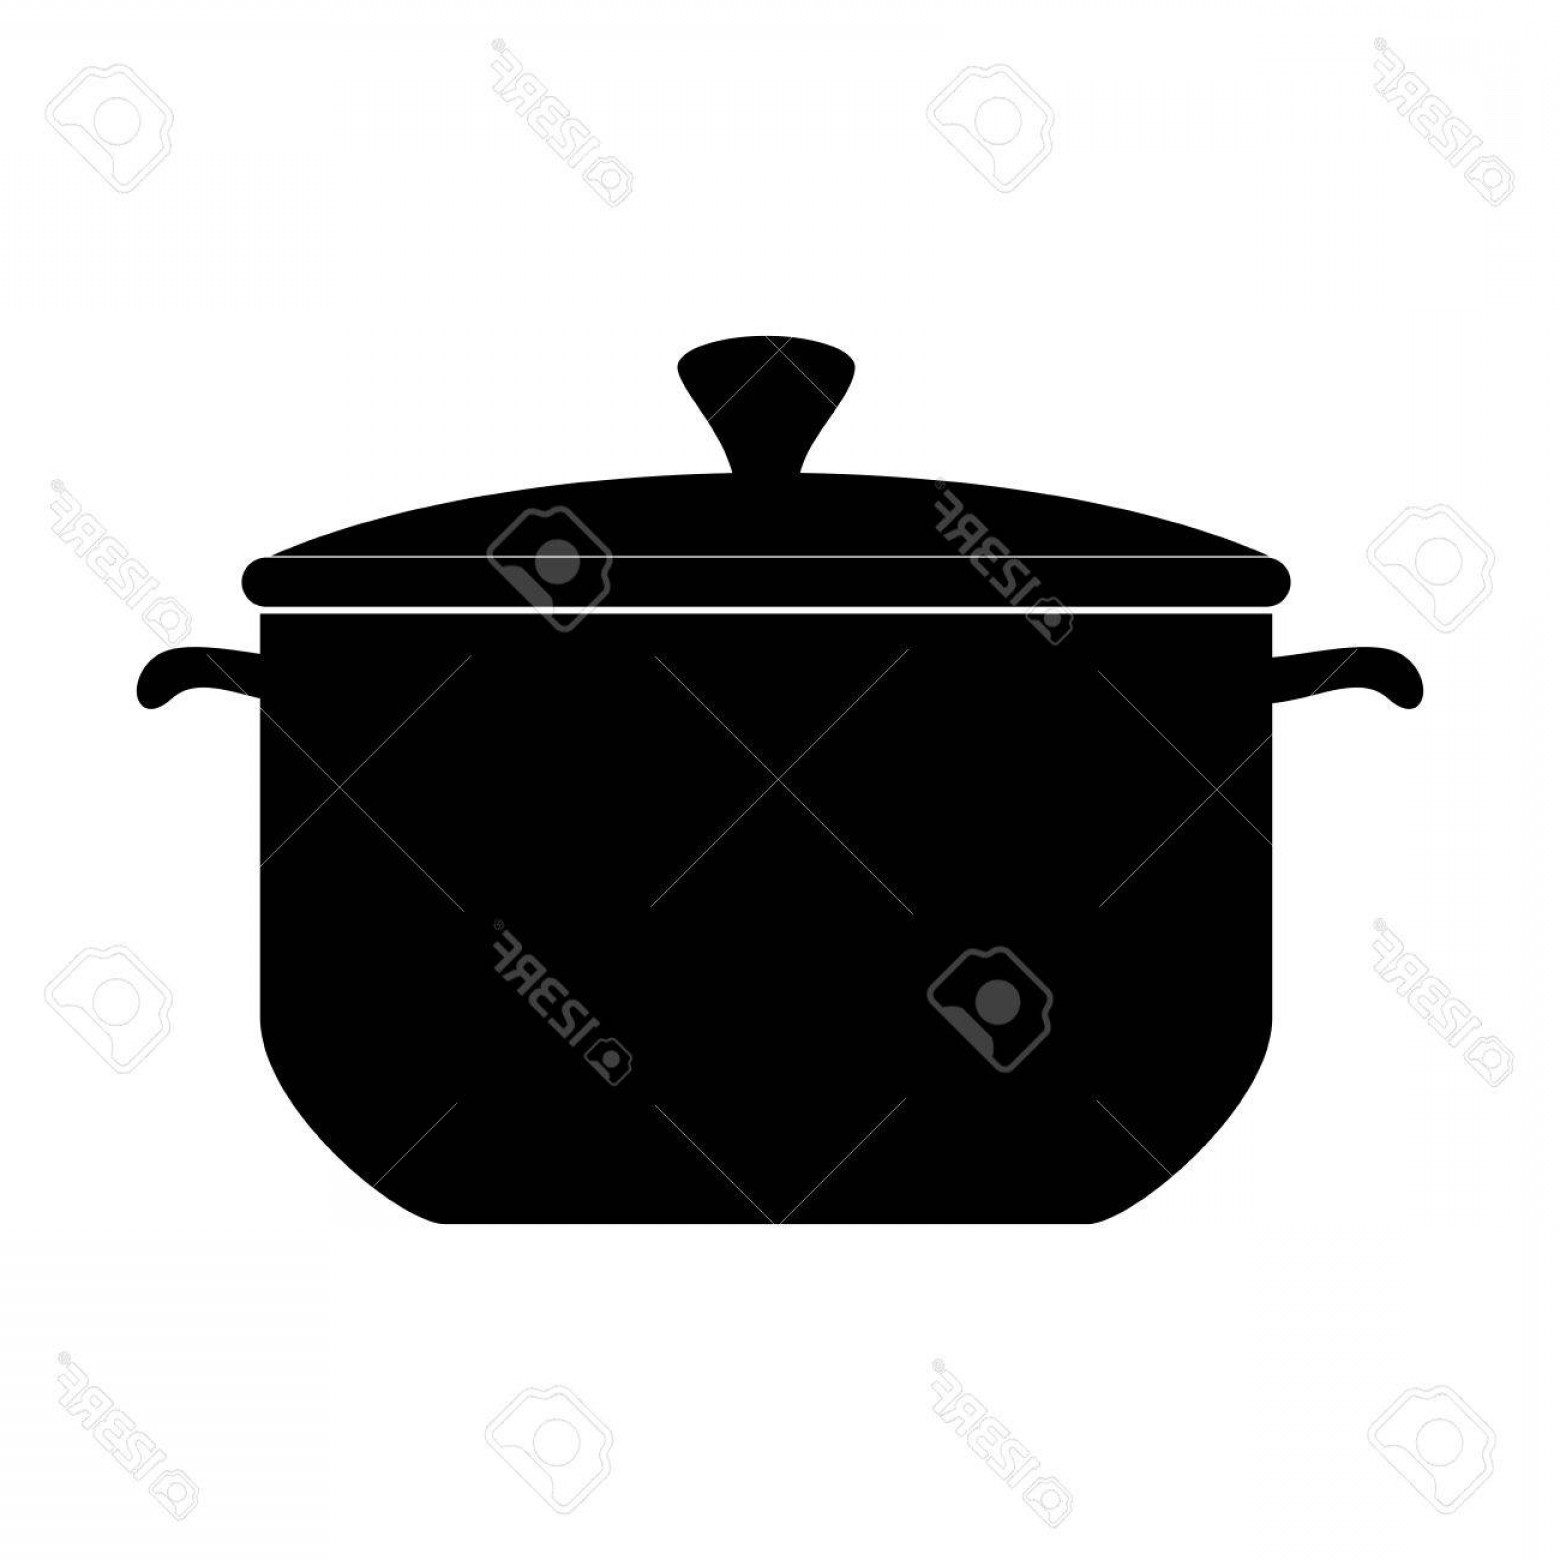 Big Cook With Cooking Pot Vector: Photostock Vector Pot Cooking Pan Kitchen Cook Silhouette Cap Utensil Vector Isolated Illustration